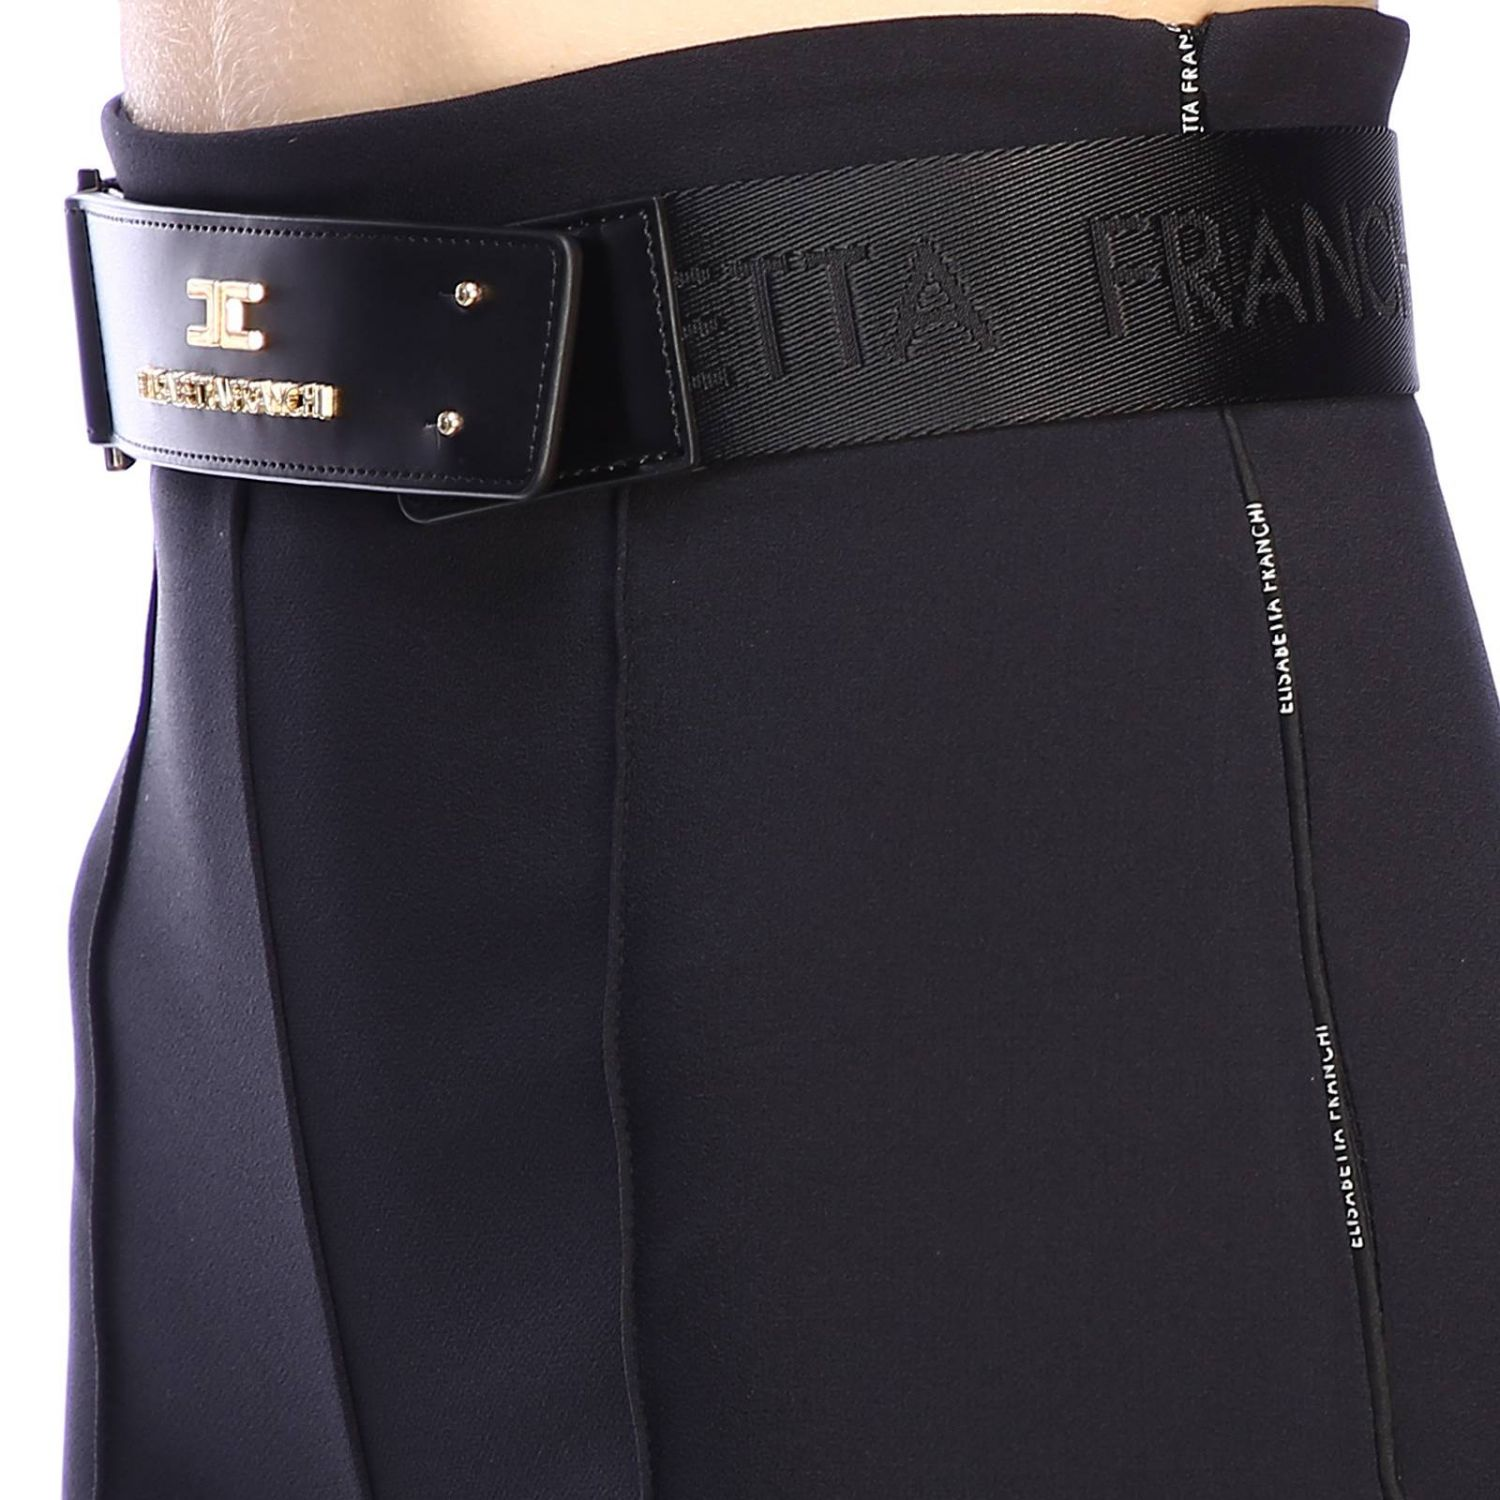 Trousers women Elisabetta Franchi black 4